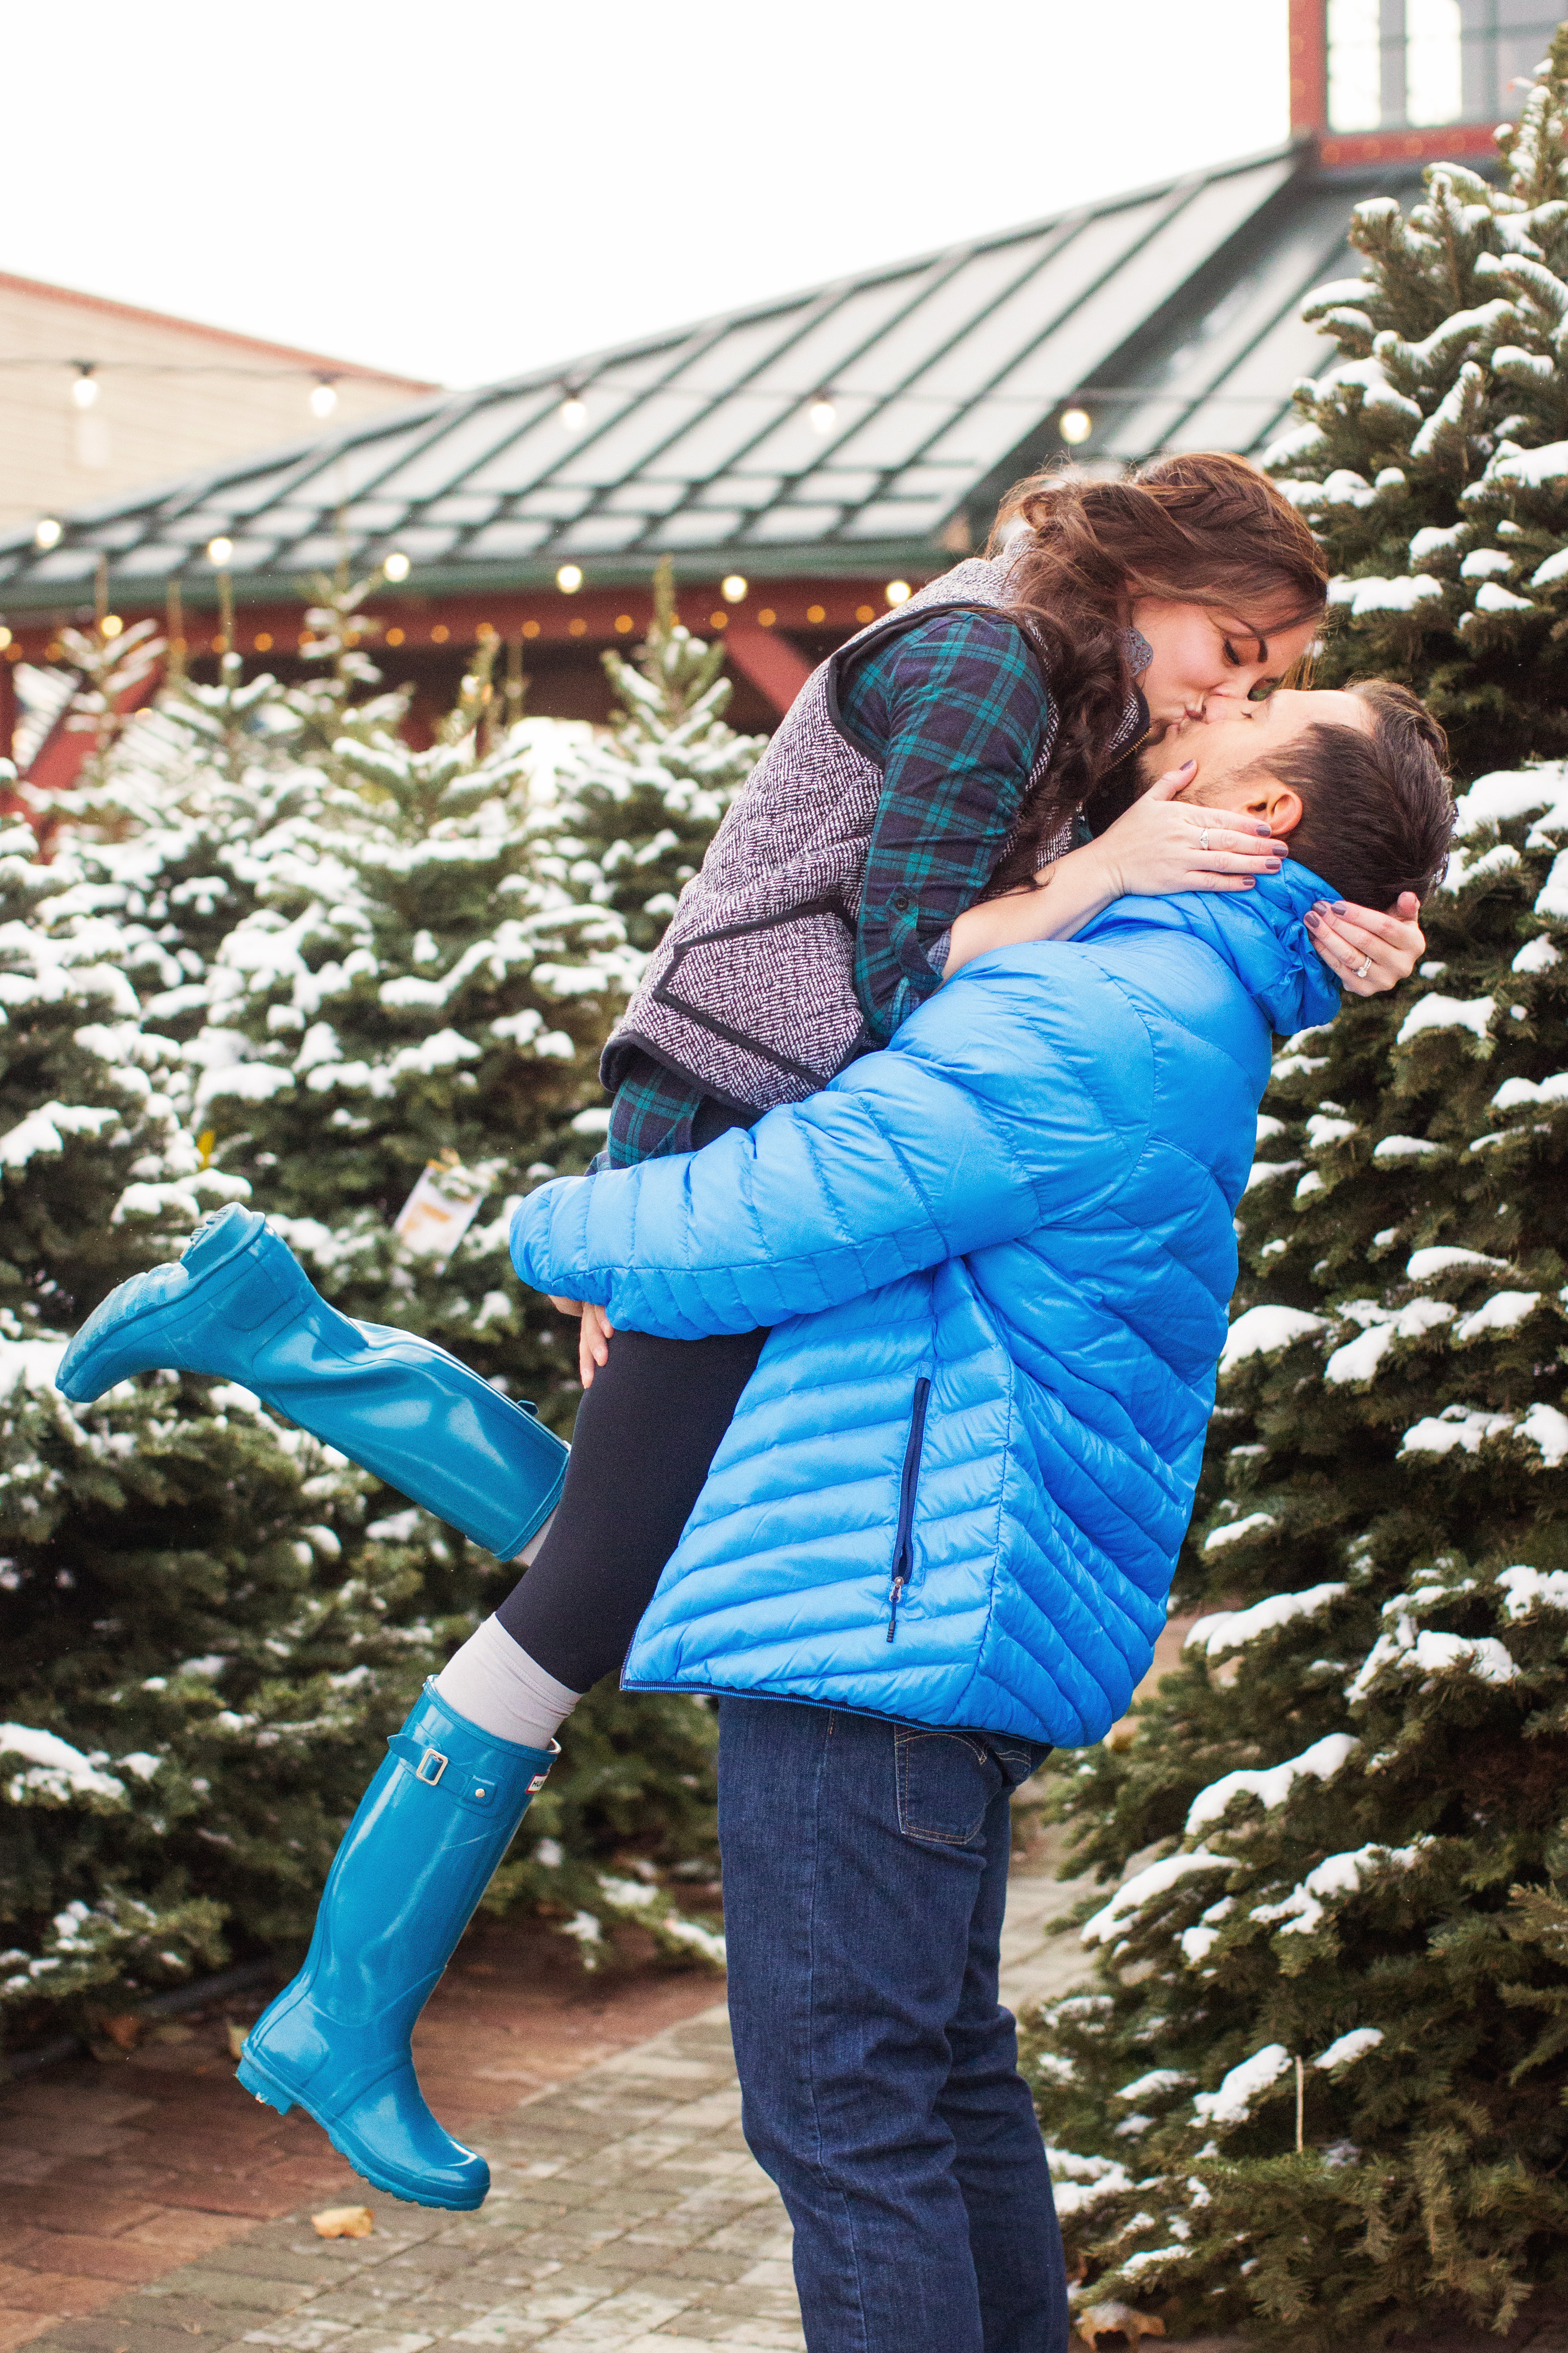 """Baby it's Cold Outside"" – Couples Christmas Pictures at a Christmas Tree Lot"